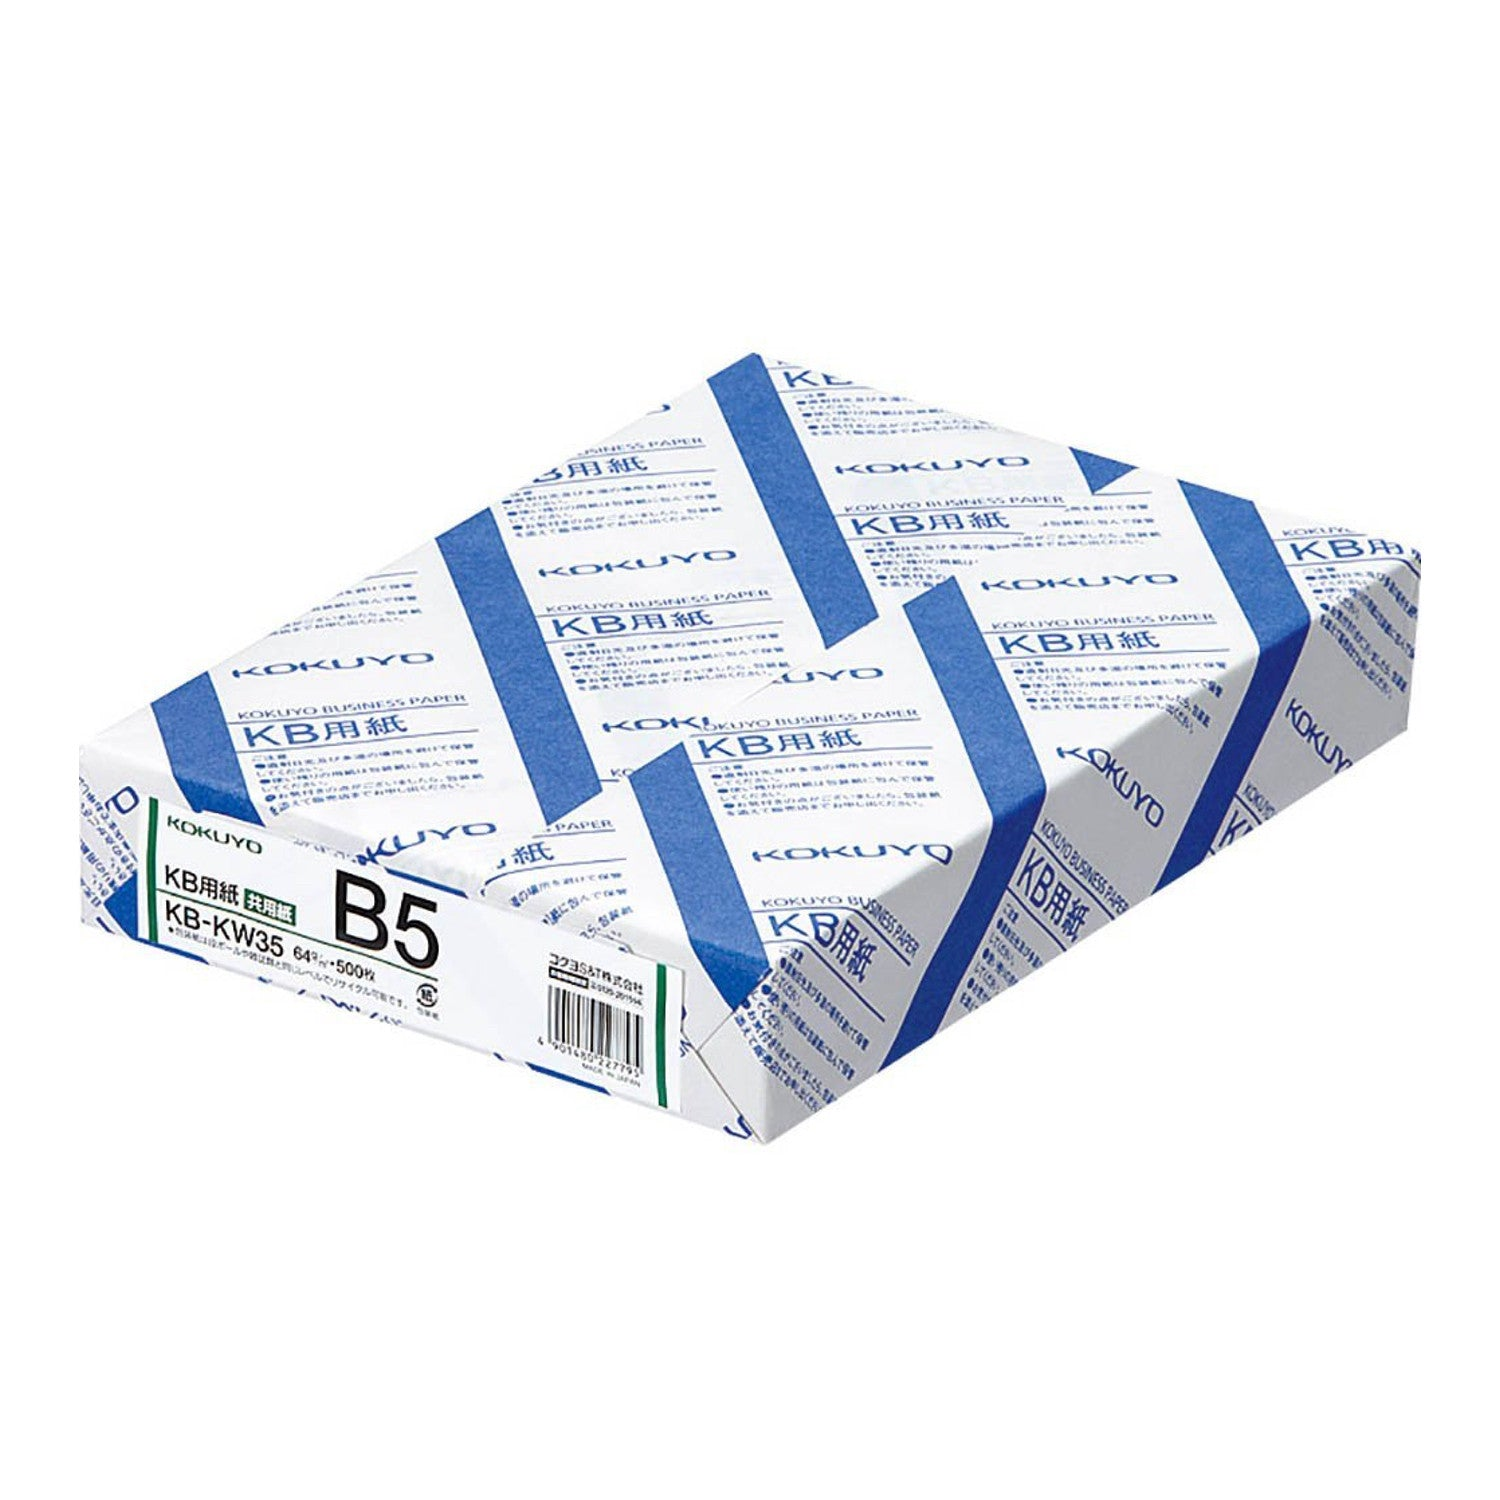 Kokuyo KB paper both white paper recycled paper B5 500 sheets KB-KW35